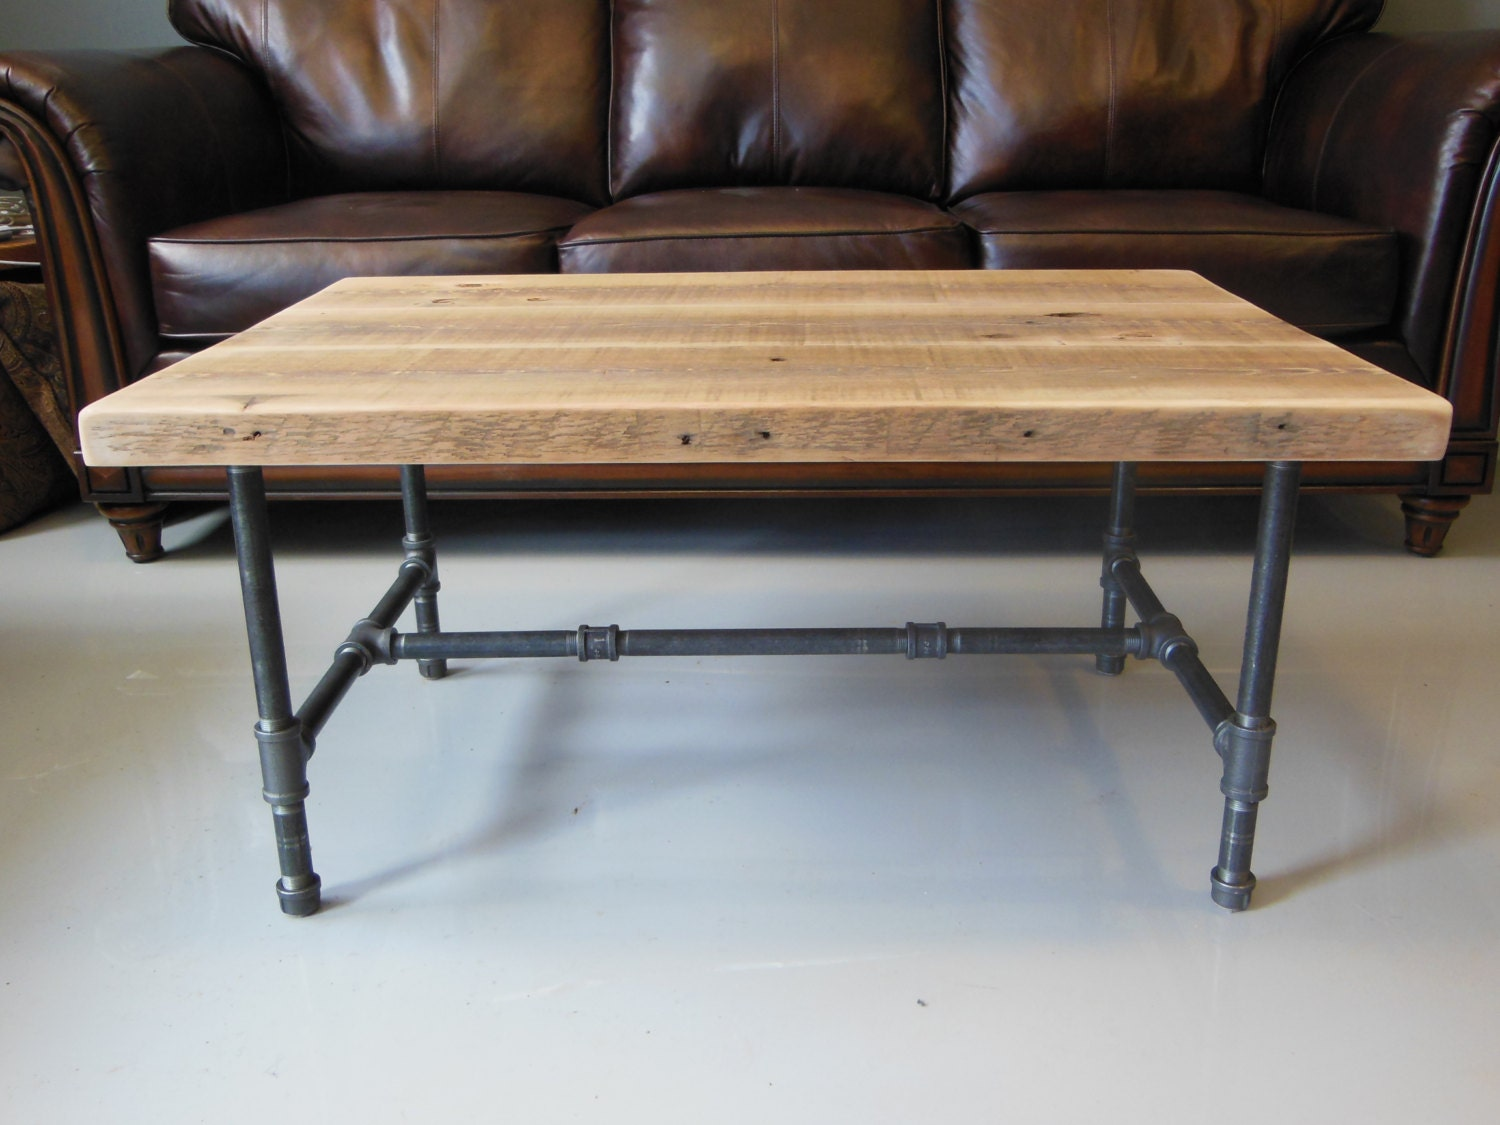 Reclaimed Wood Coffee Table With Industrial Pipe Legs By DendroCo